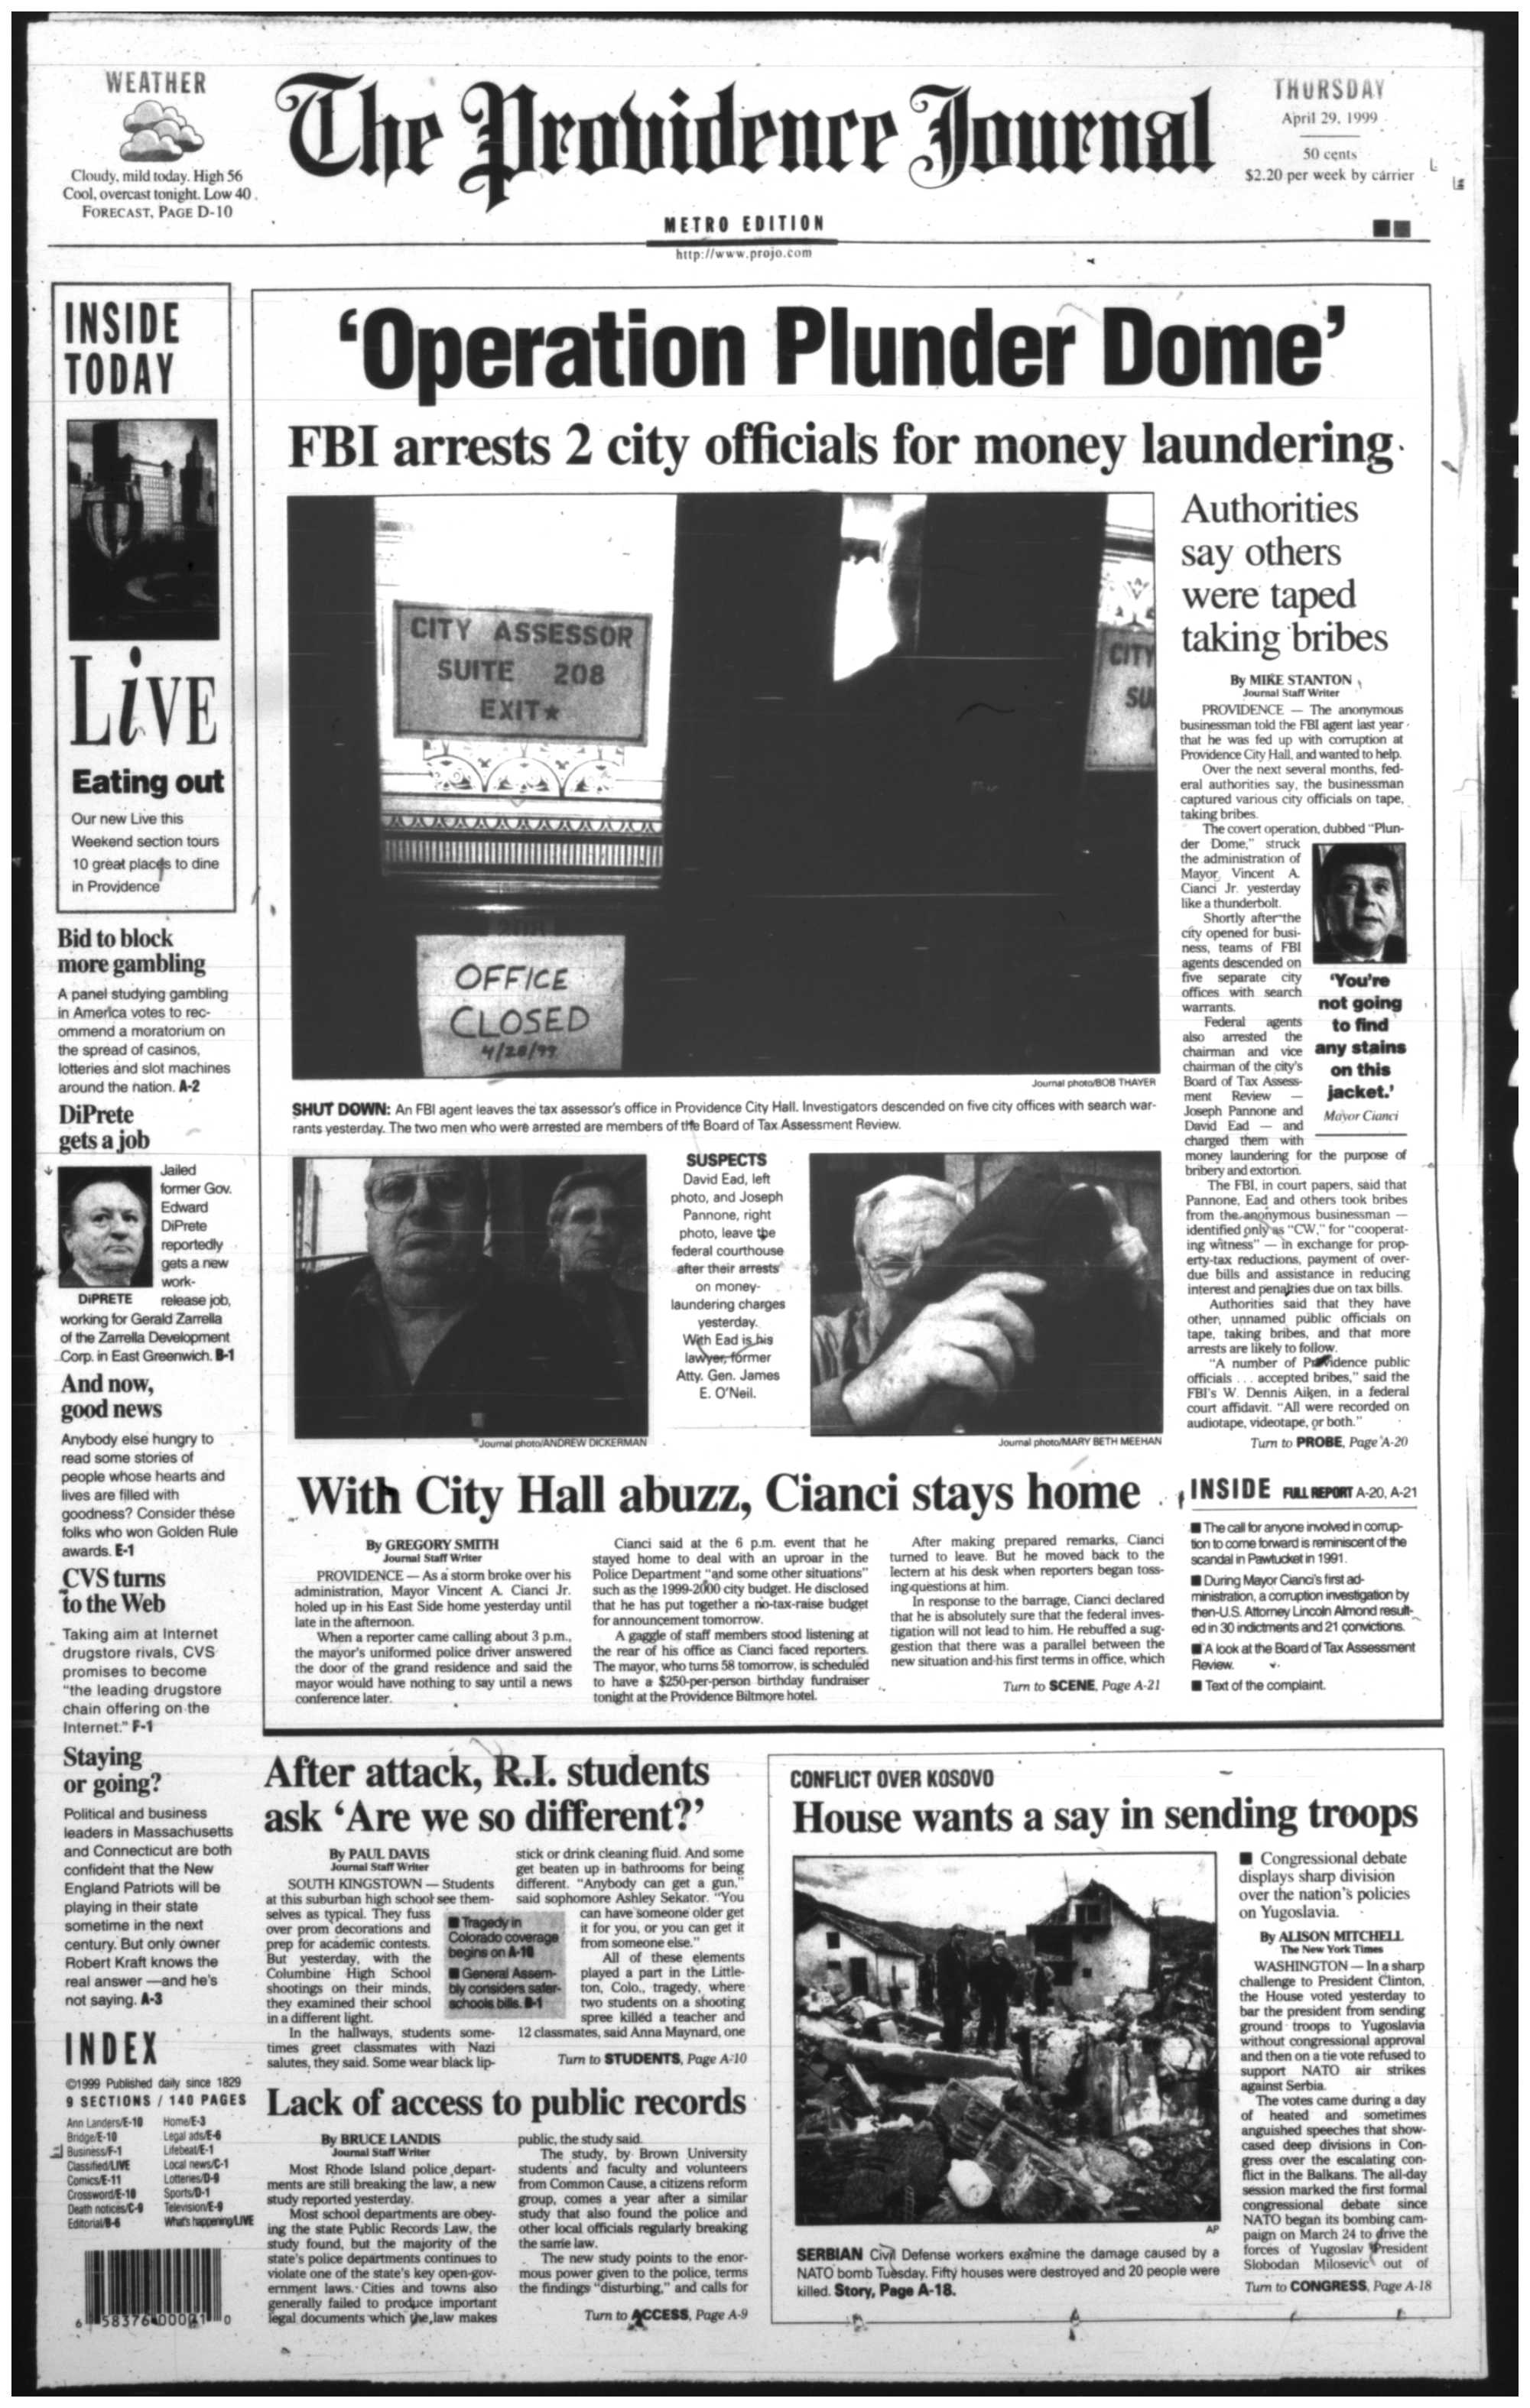 J4-29-1999-A1.png